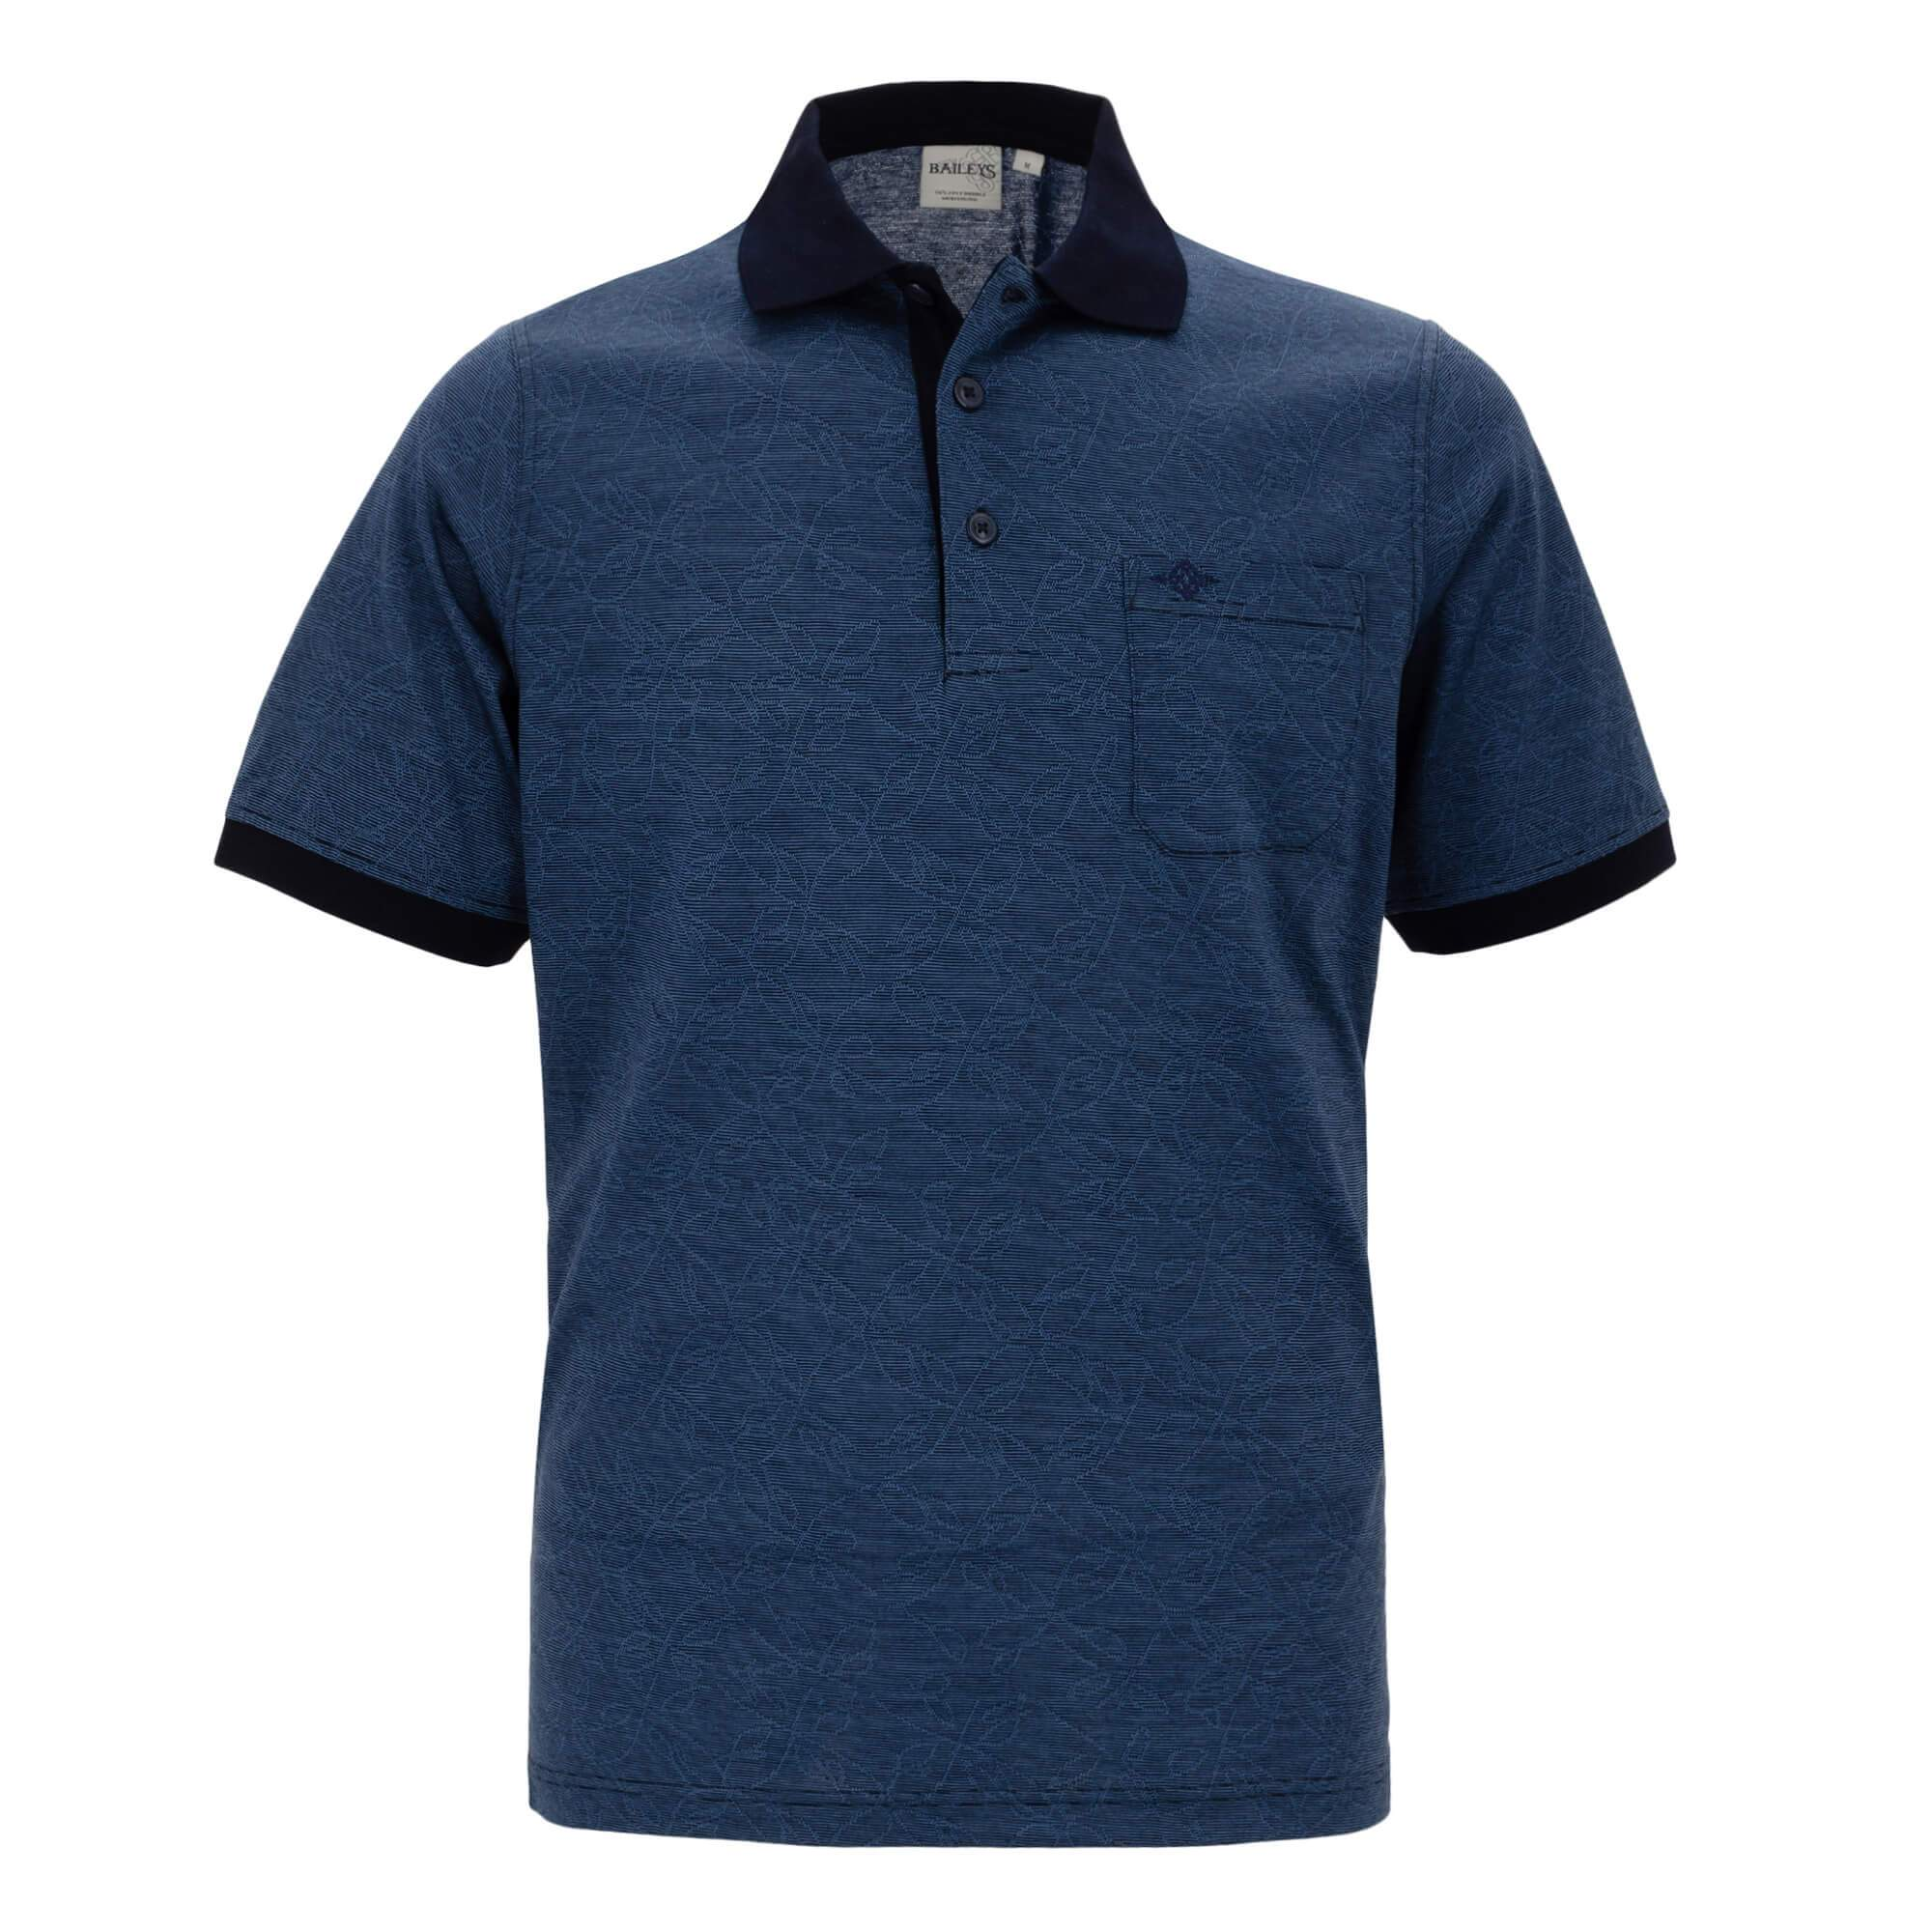 Polo estampado corte regular fit 914053